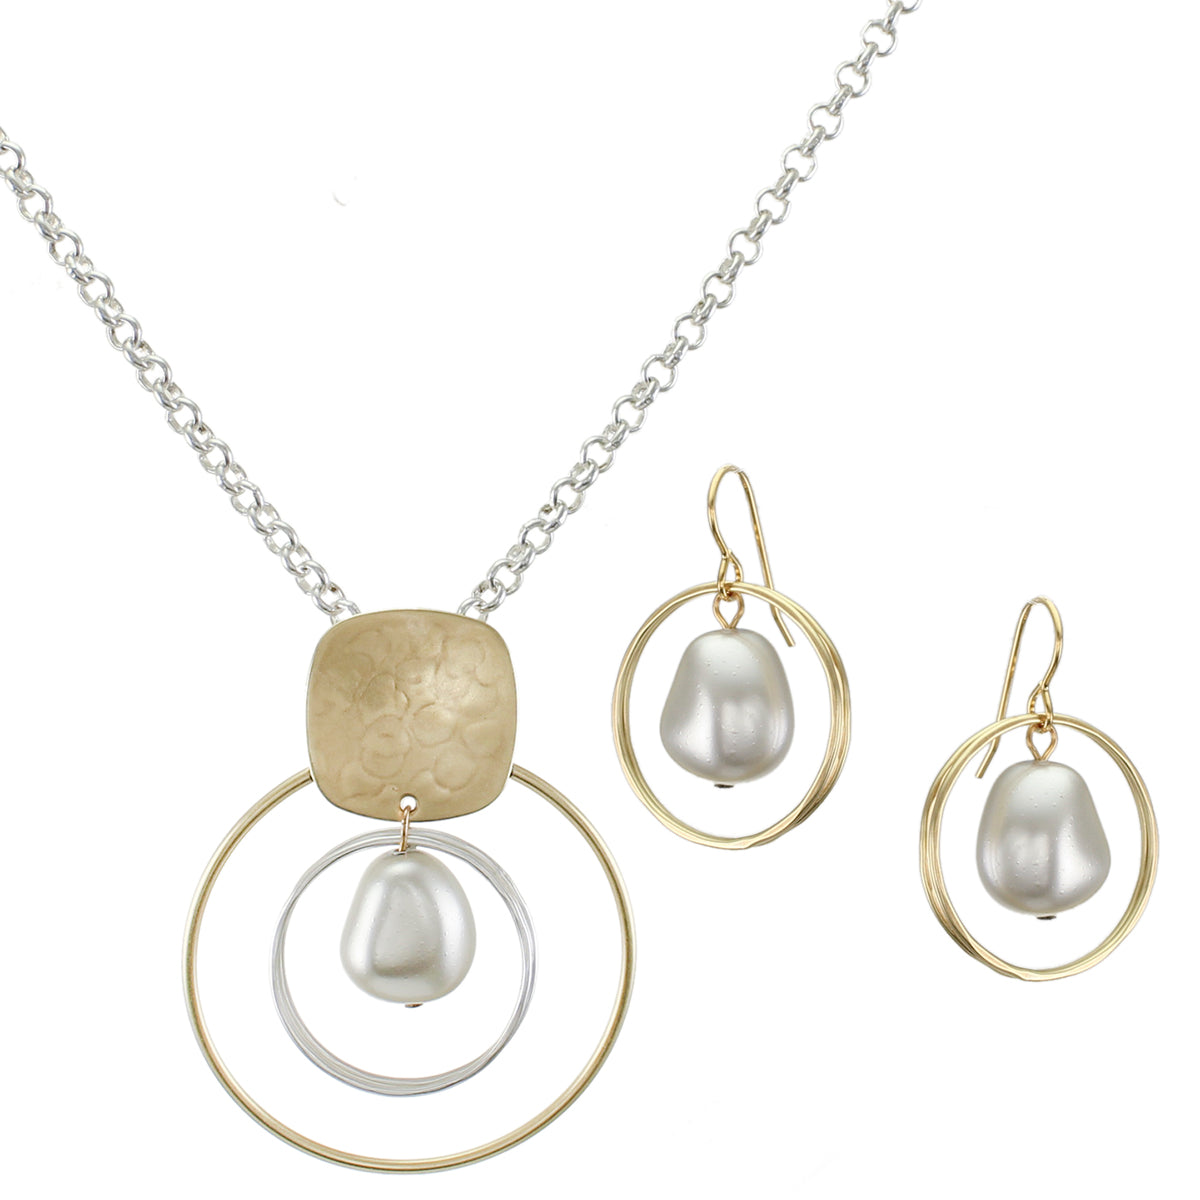 Unique Pearl Matching Set - Brass Silver and White Pearl Necklace and Wire Earrings